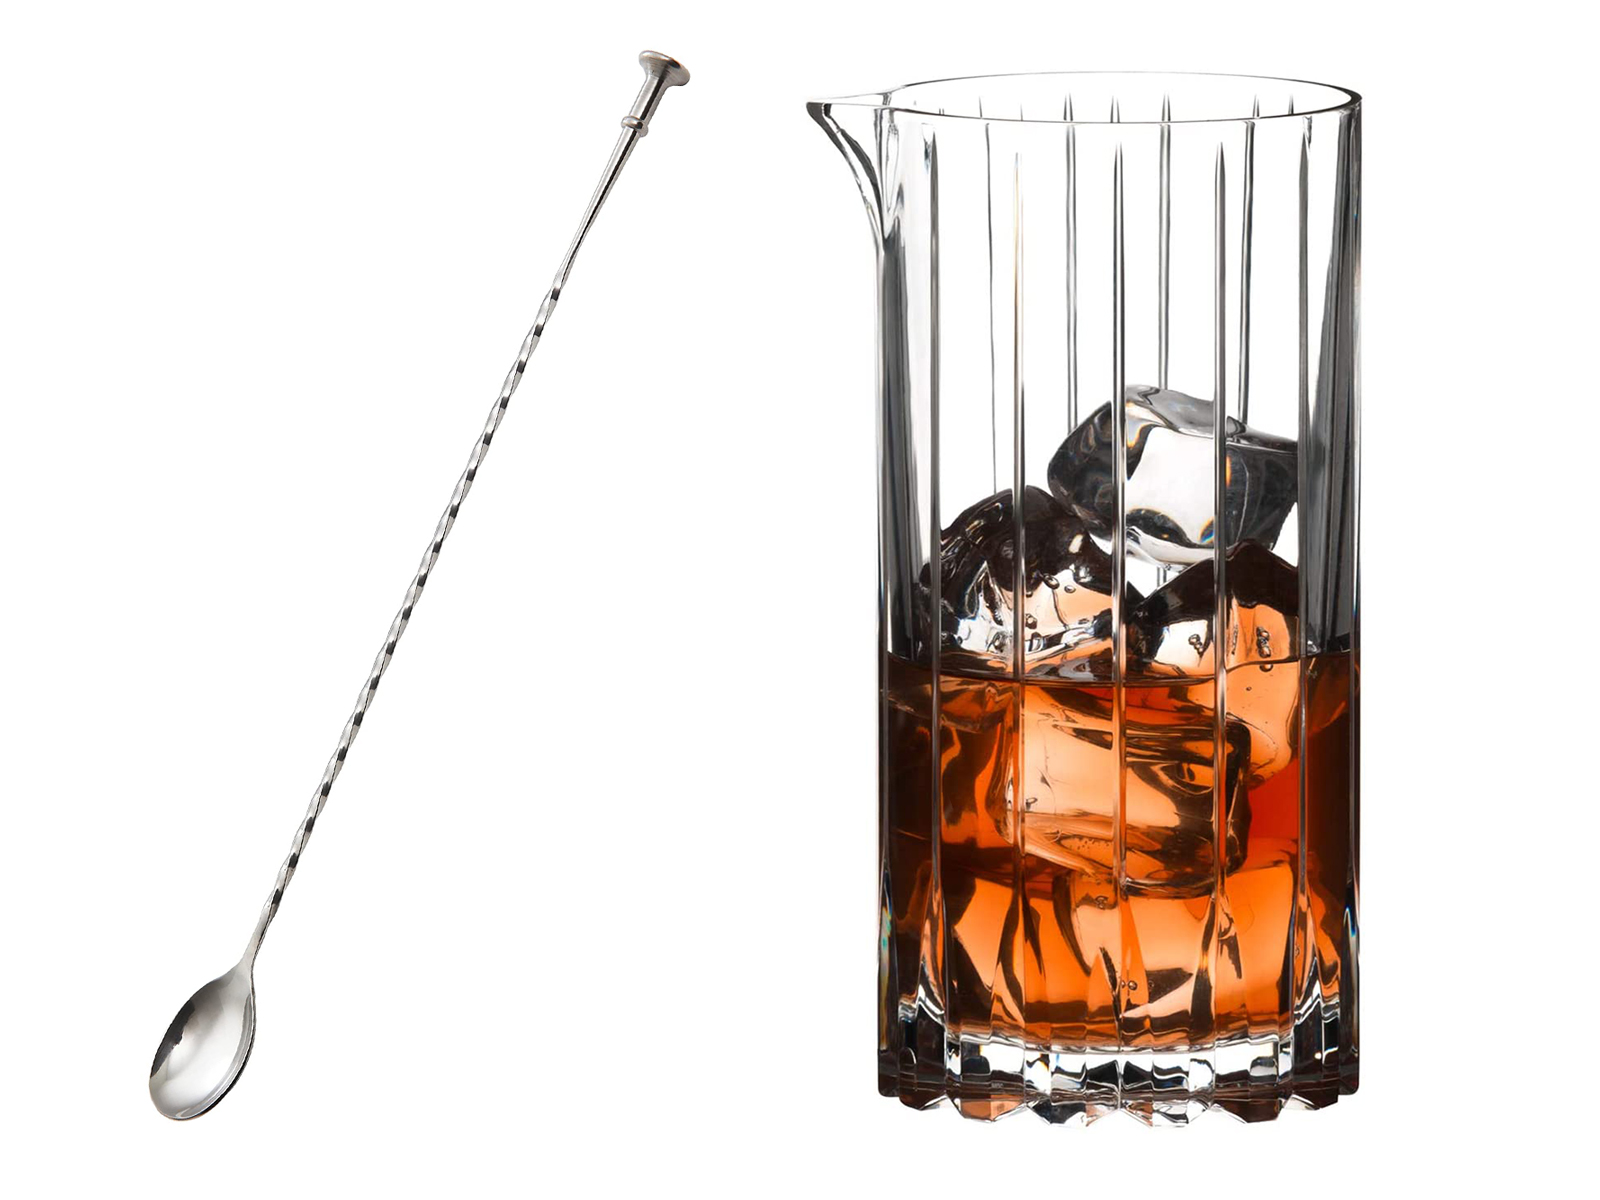 bar spoon and mixing glass